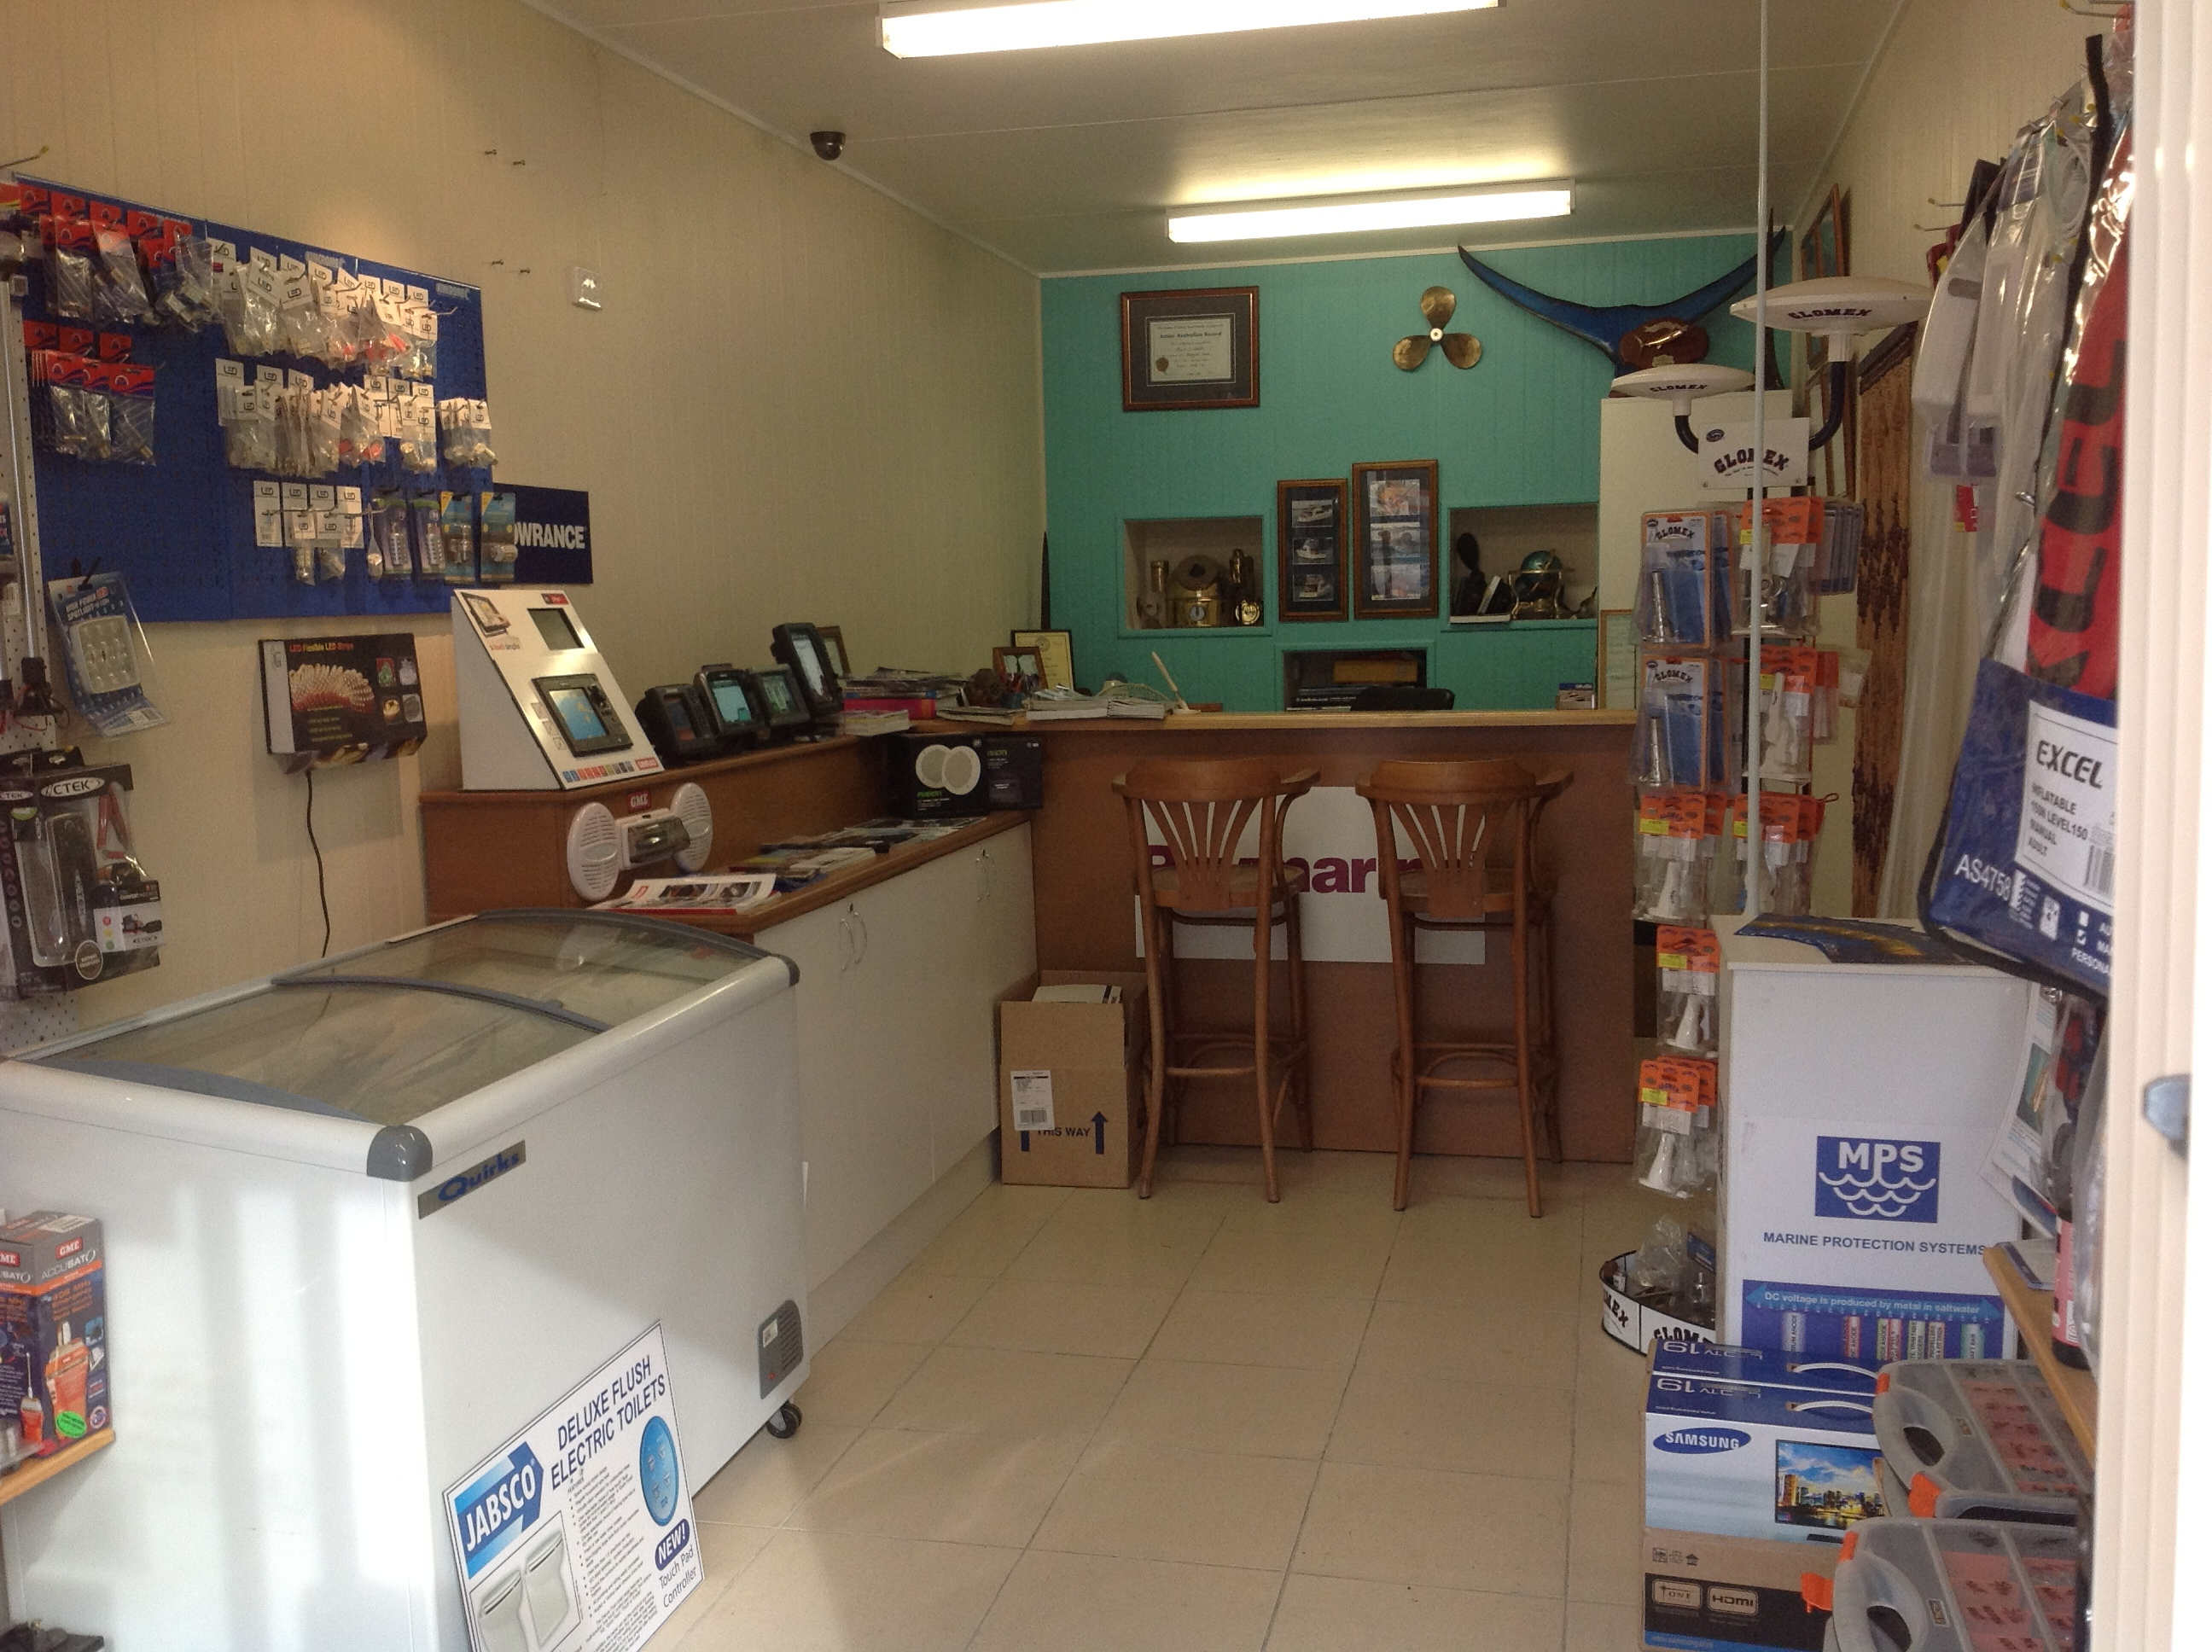 shotgun-marine-electrician-port-macquarie-showroom-3.jpg